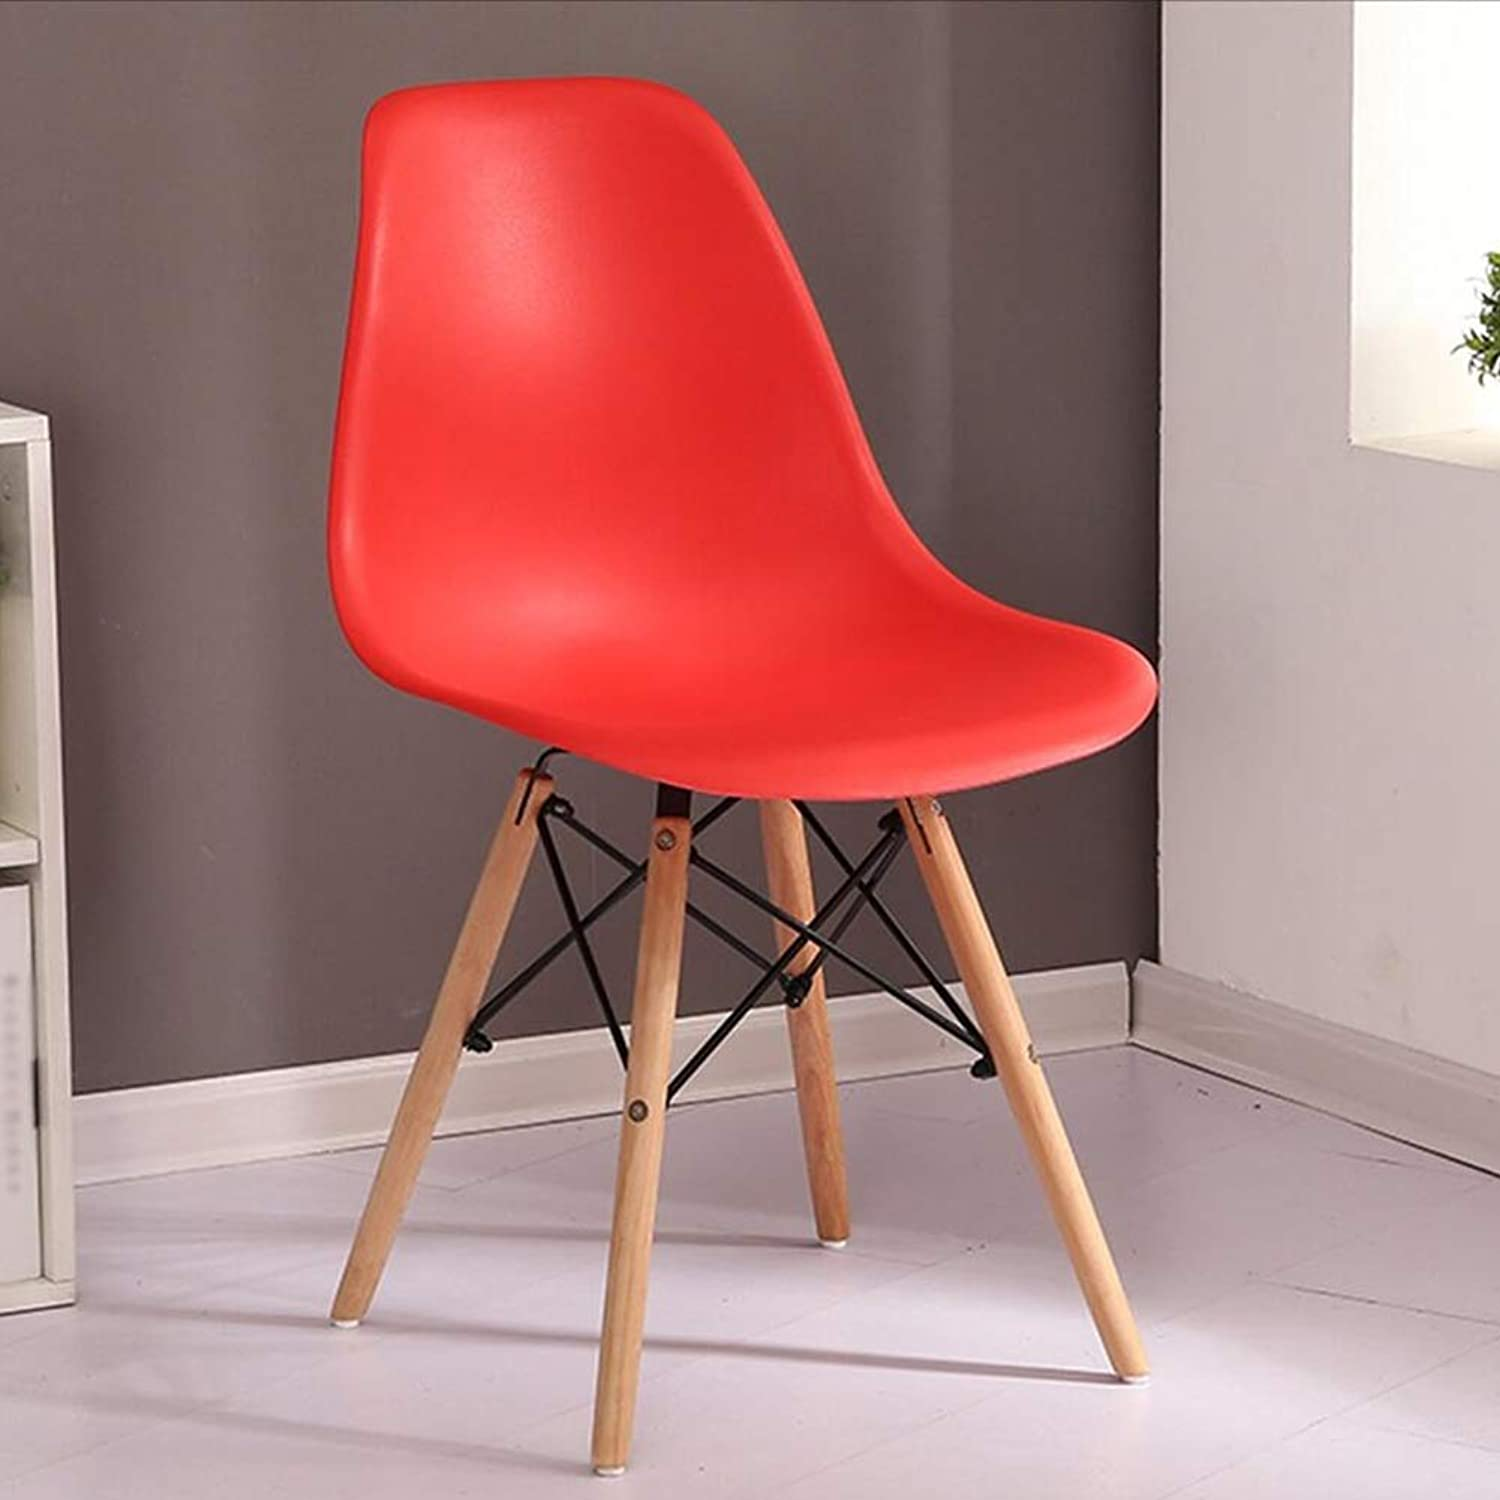 Dining Chairs Seat Chair Household Backrest Desk Northern Europe Casual Lazy Student Economic Type FENPING (color   RED, Size   81  41  39cm)